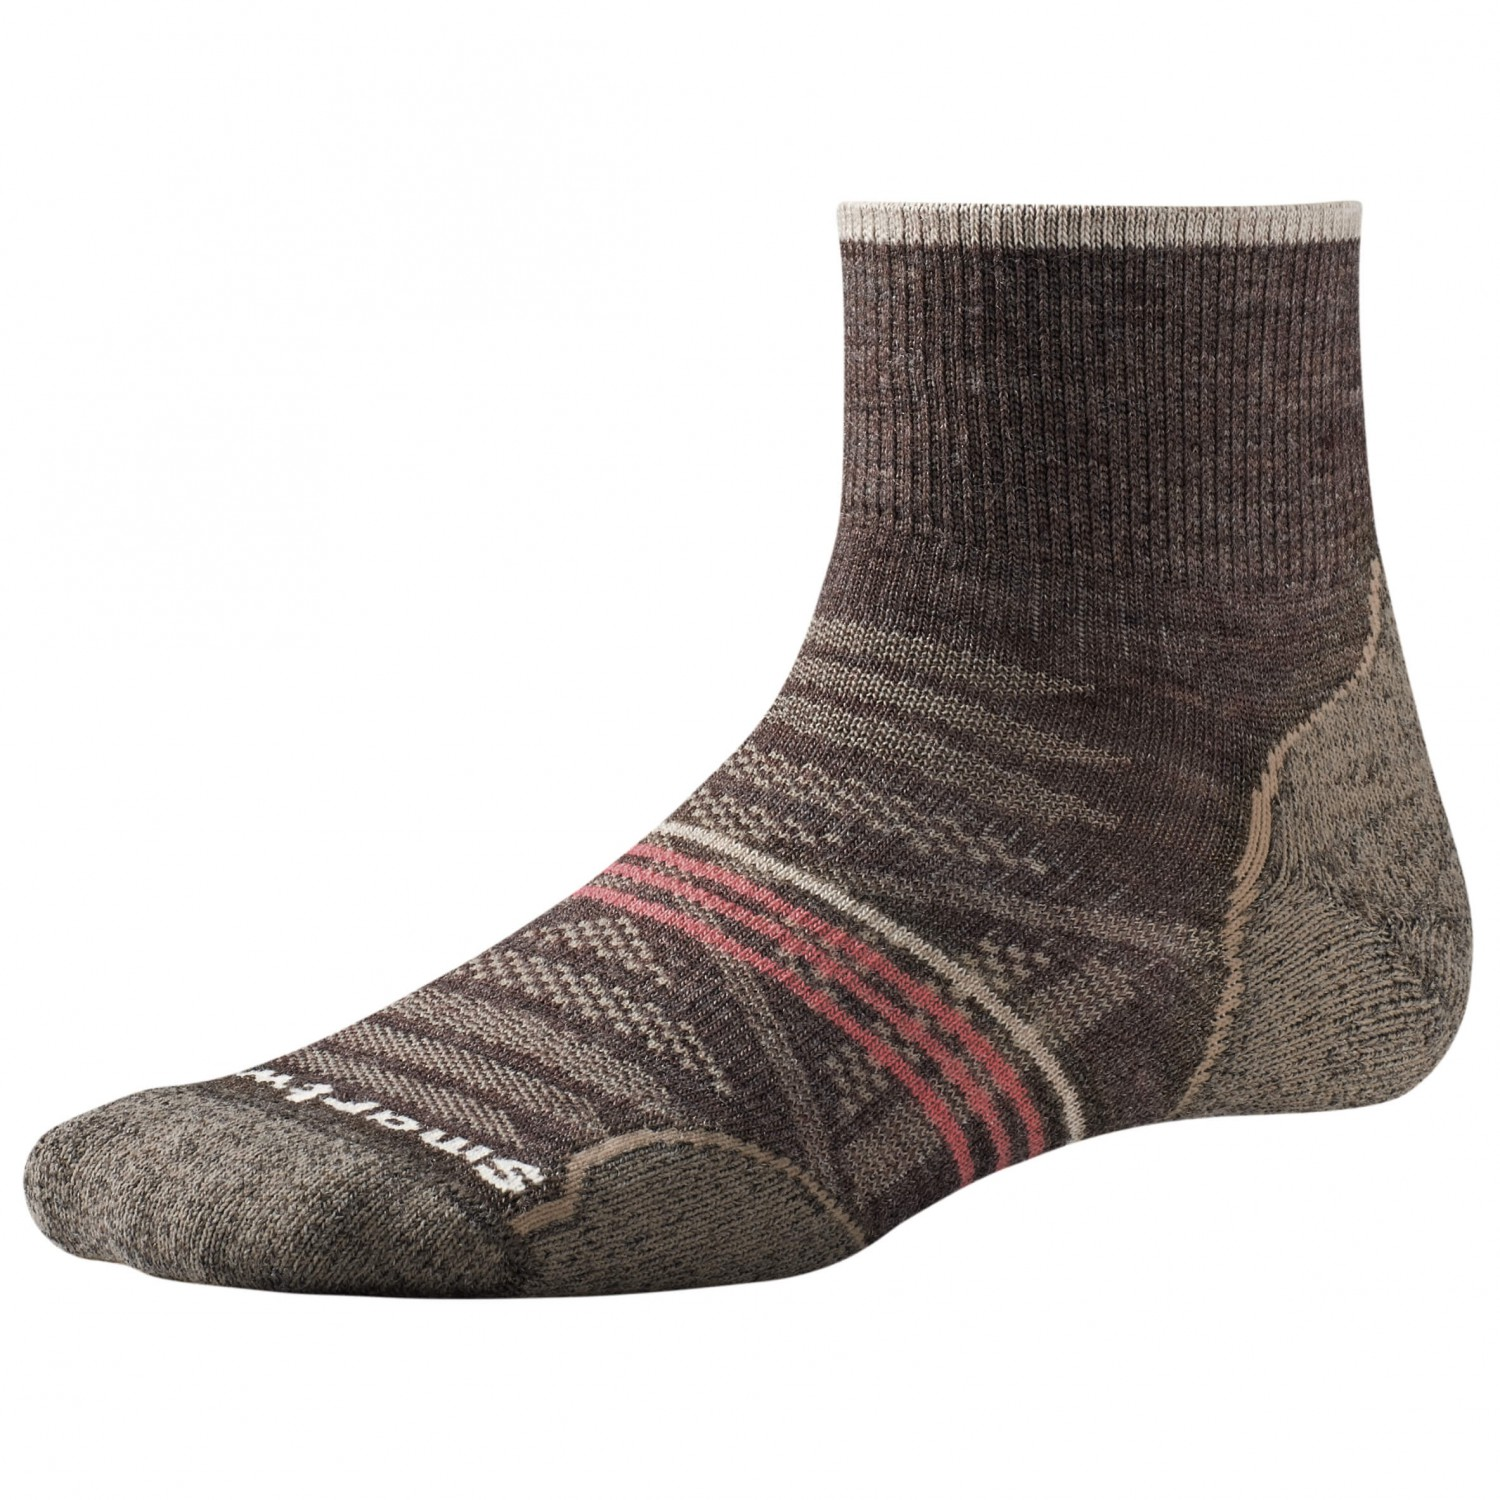 Smartwool - Women's PhD Outdoor Light Mini Taupe